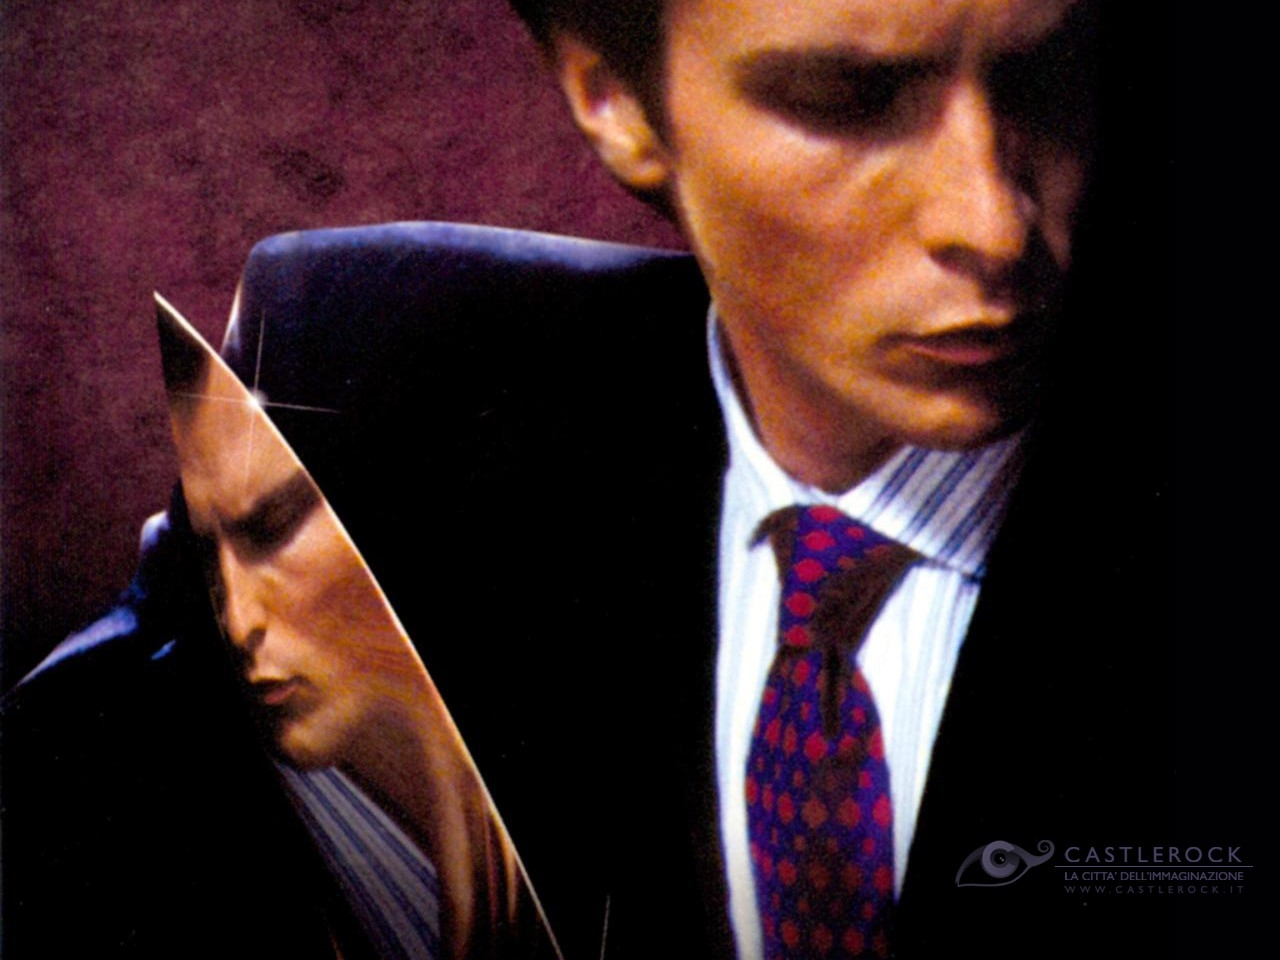 Wallpaper del film American Psycho